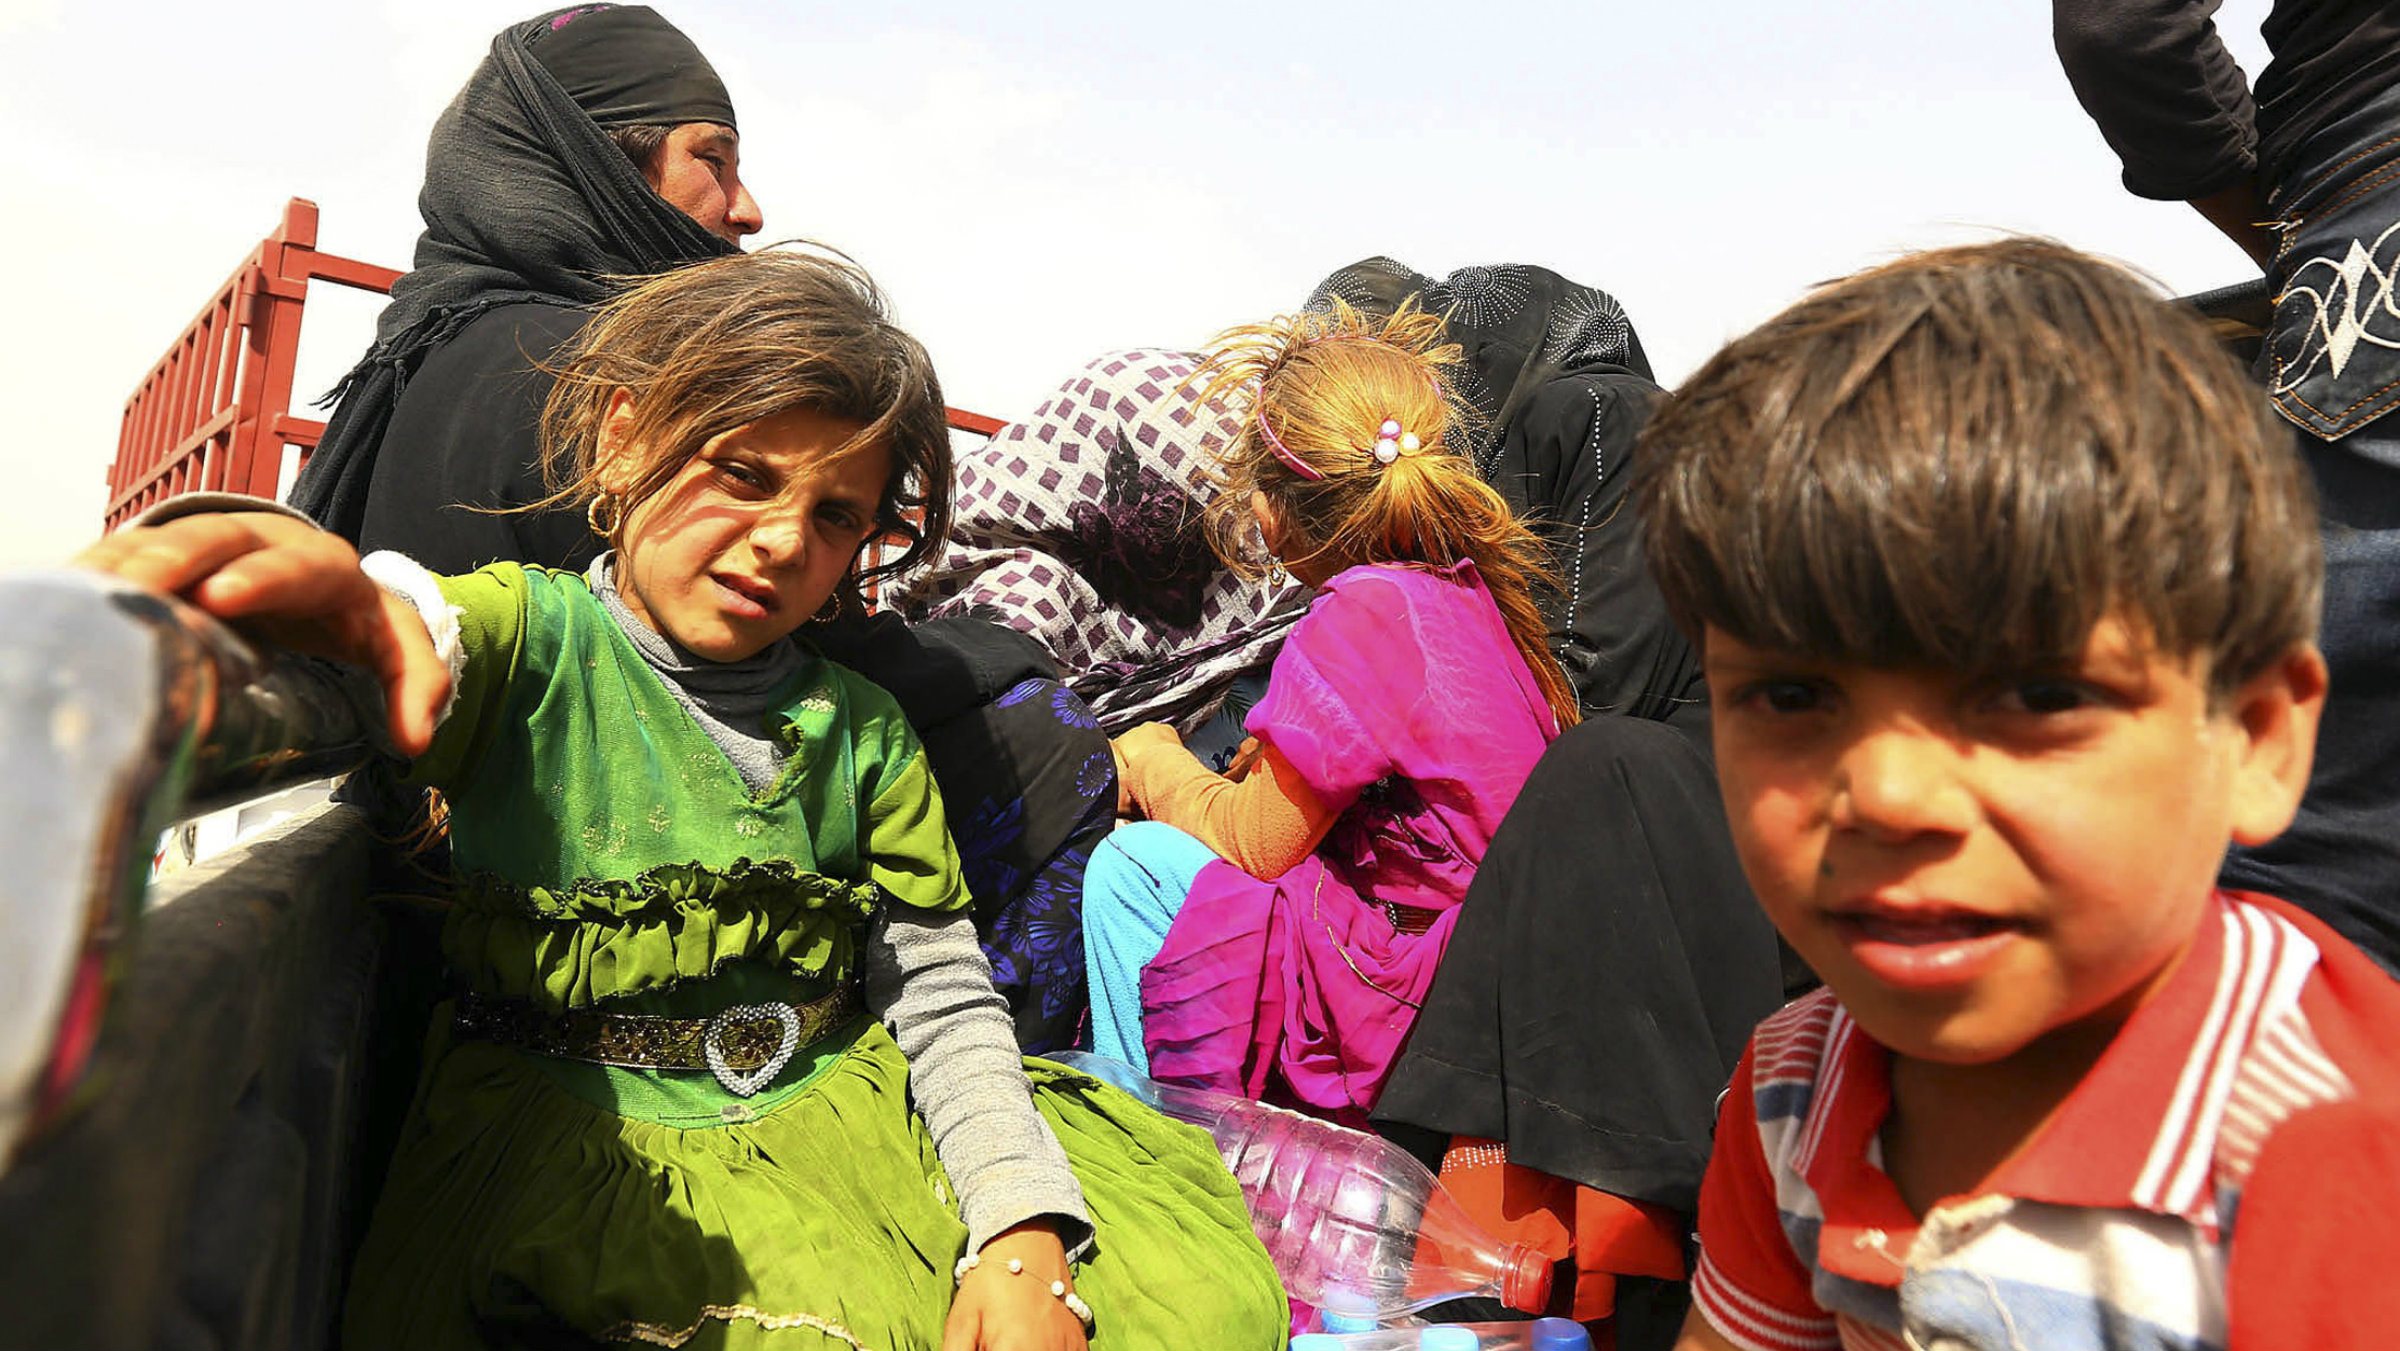 Refugees fleeing the fighting in Iraq.